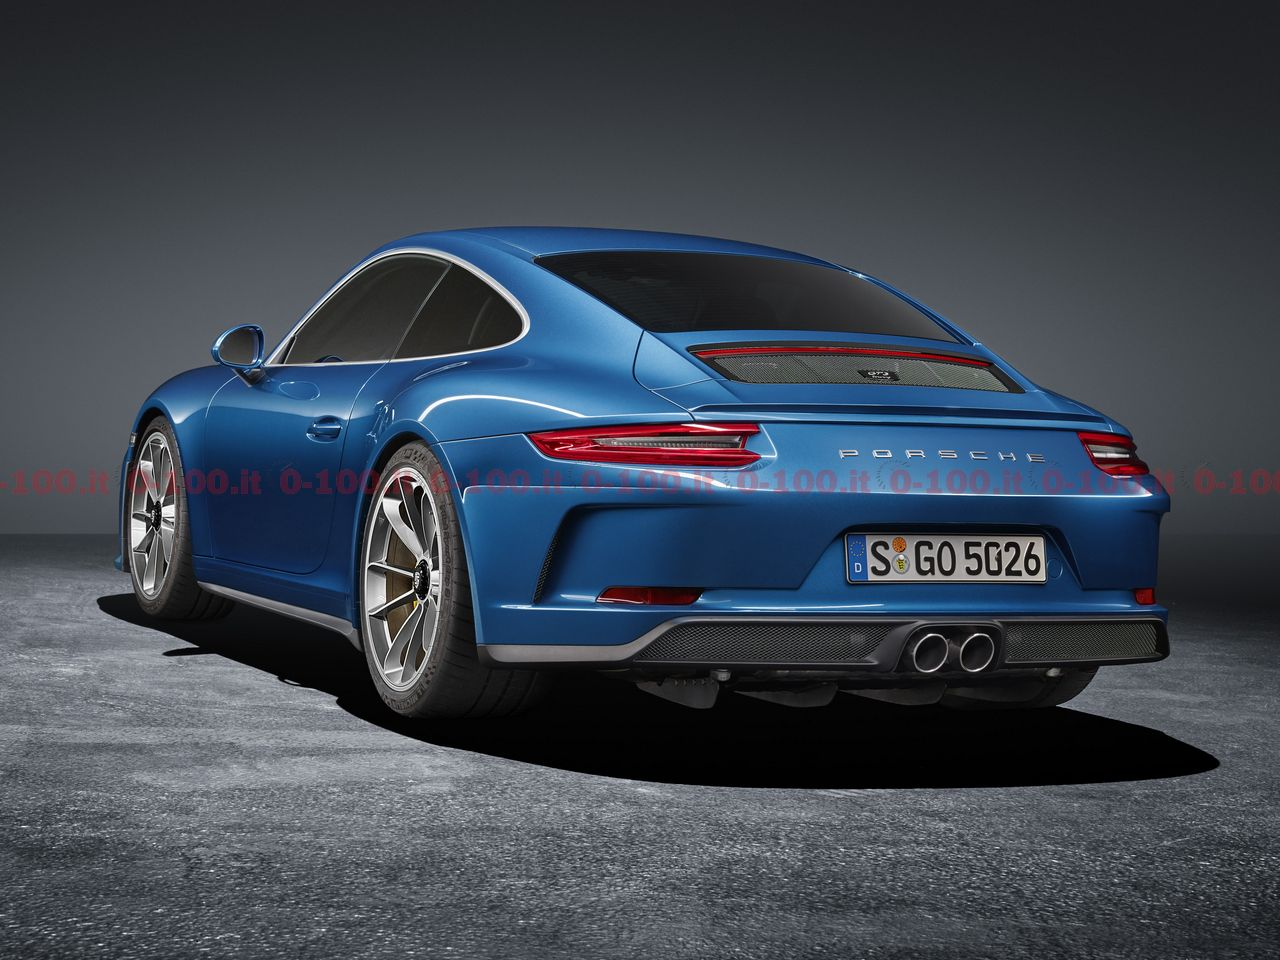 porsche-911-991-gt3-touring-package-manual-gearbox_0-100_A3